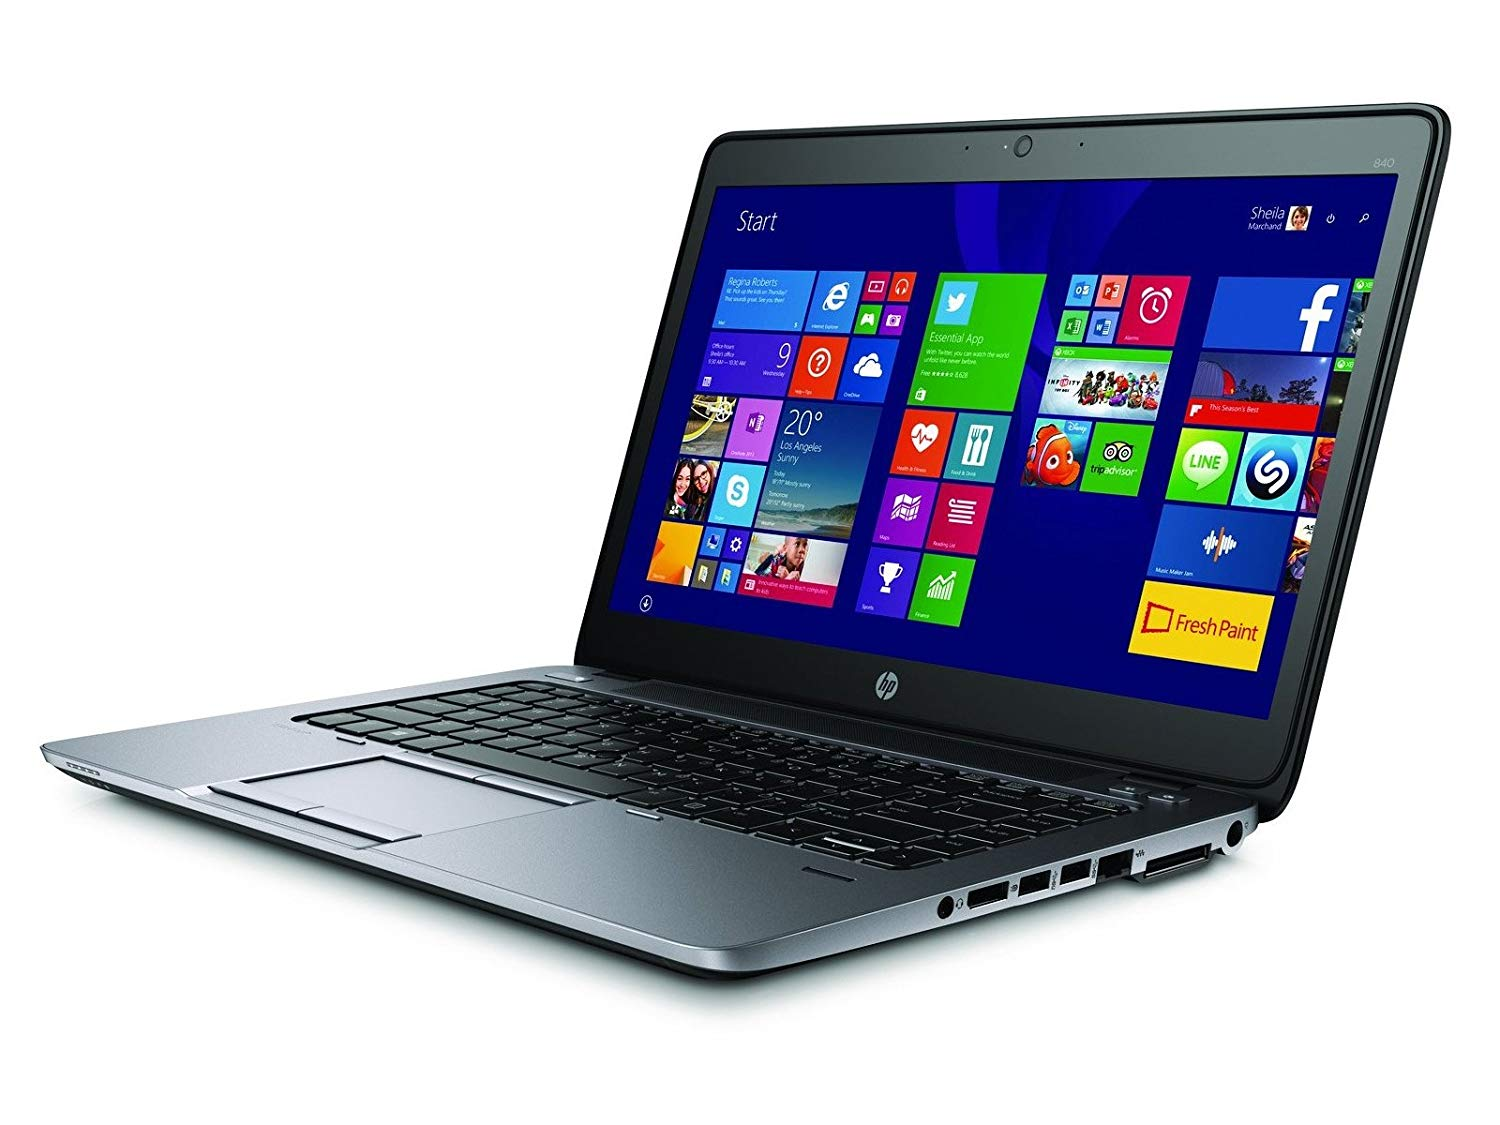 "HP EliteBook 840 G2 14"" Laptop, Intel i5-5300u, 8GB RAM, 256GB SSD, Windows 10 Pro"